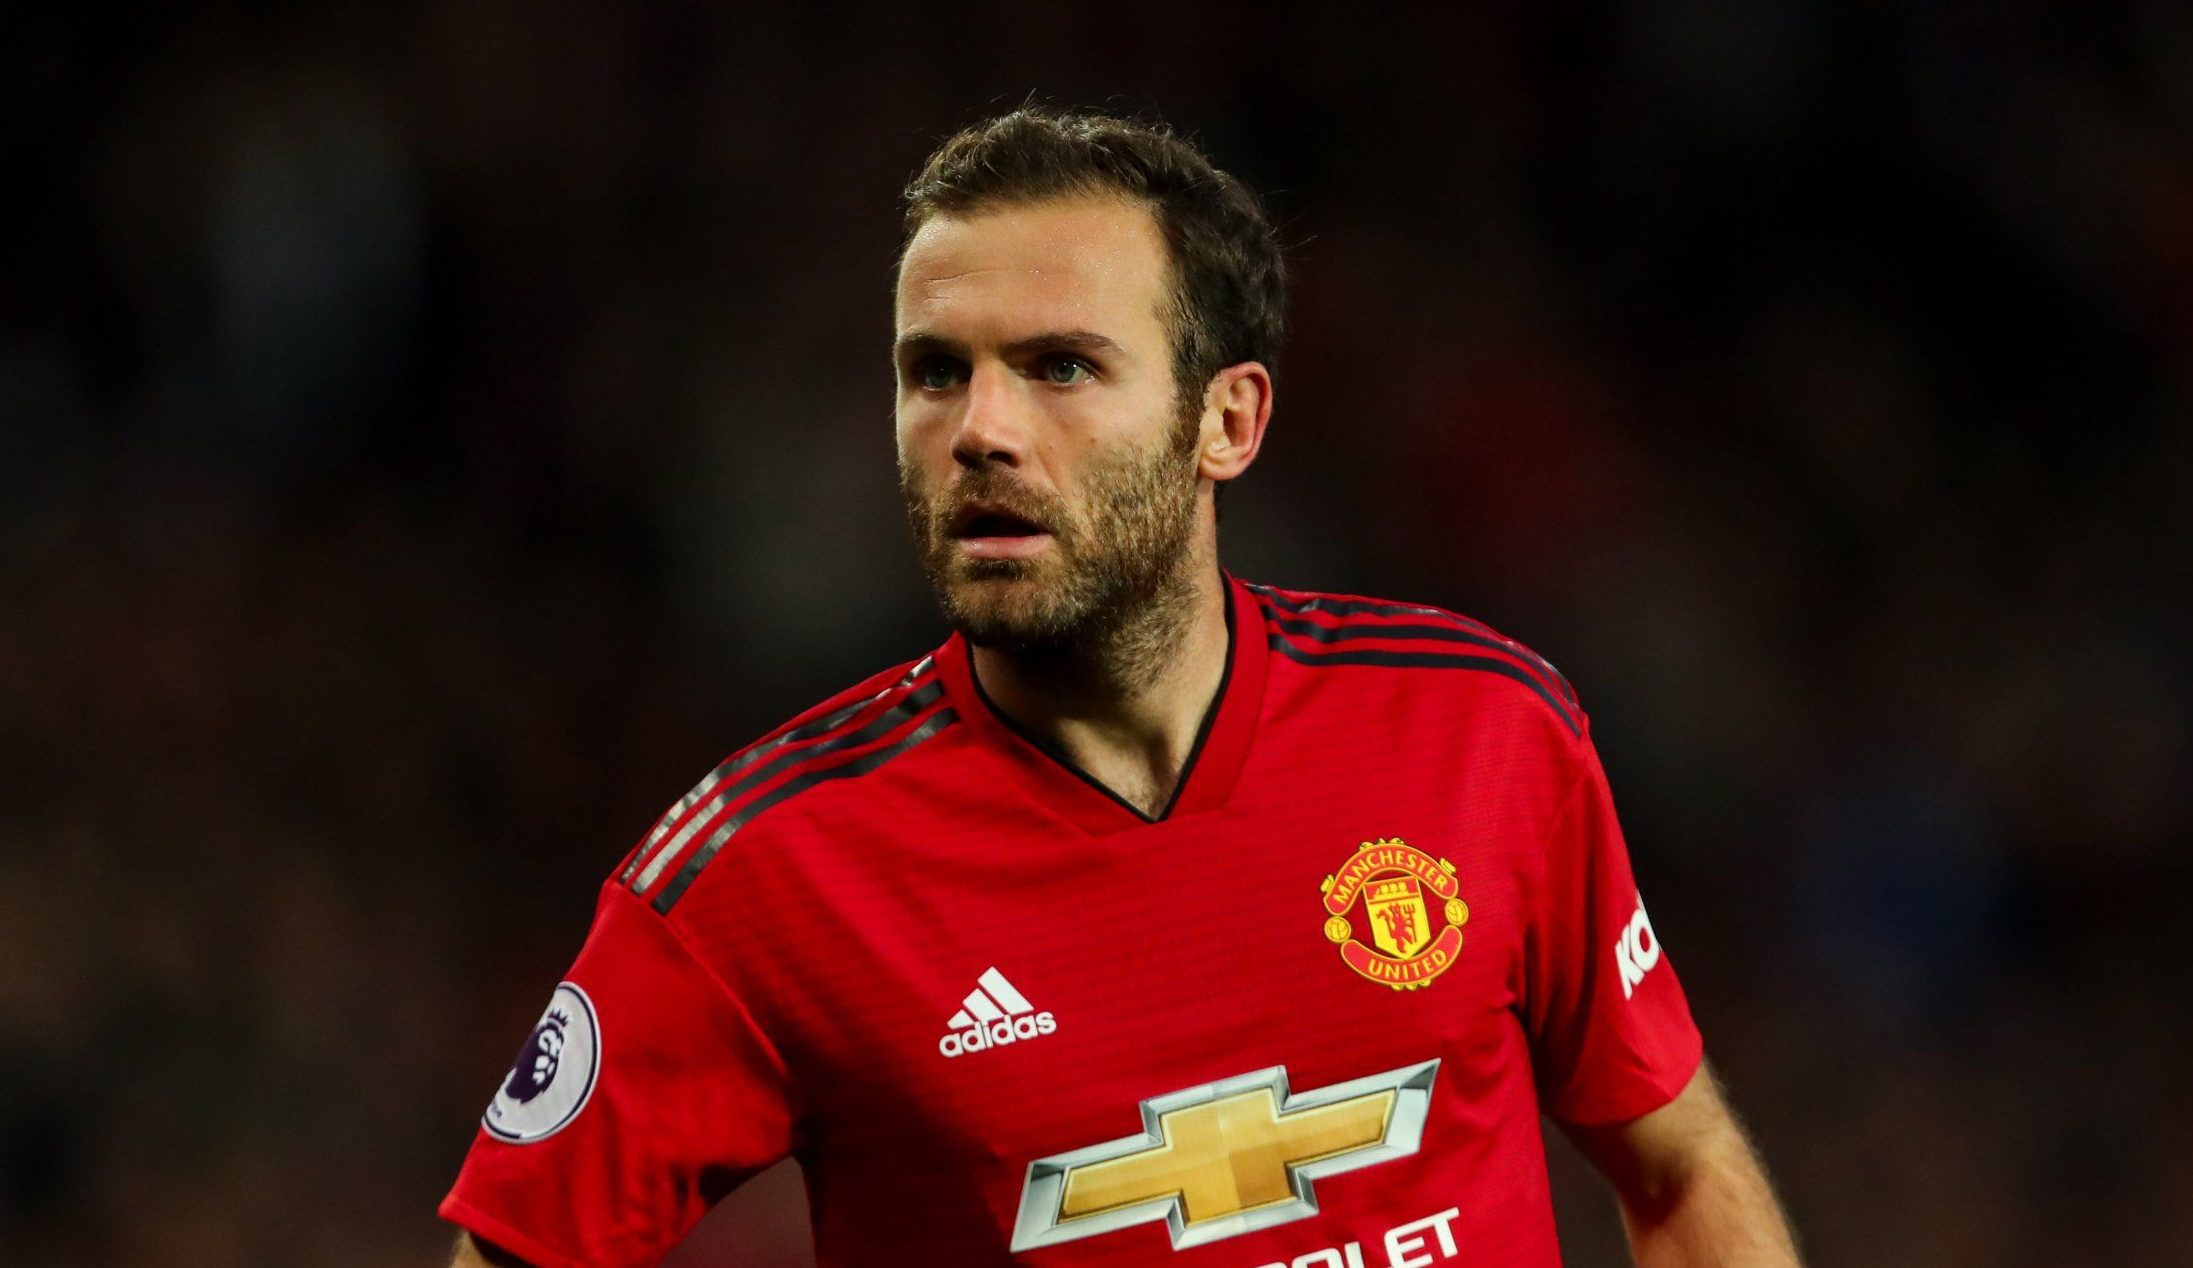 Manchester United star Juan Mata hails Unai Emery as a 'special' manager for Arsenal